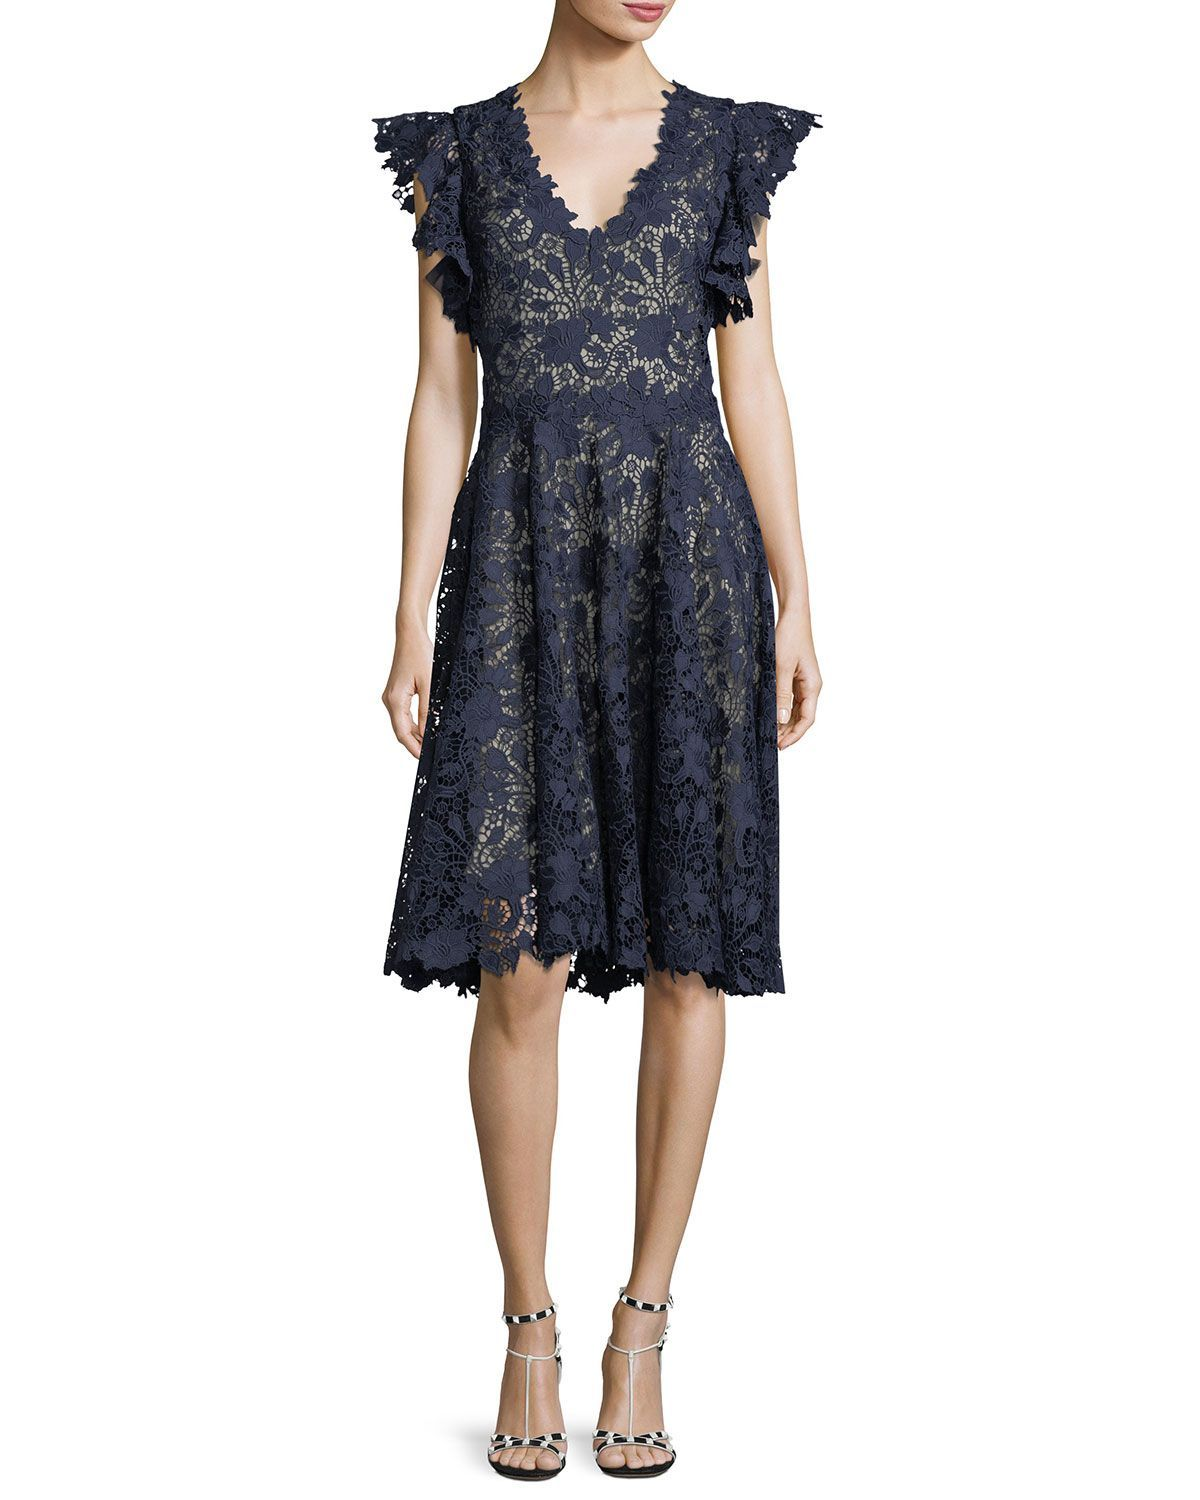 Ruffle-Sleeve Lace Cocktail Dress   Lace cocktail dresses, Ruffle ...